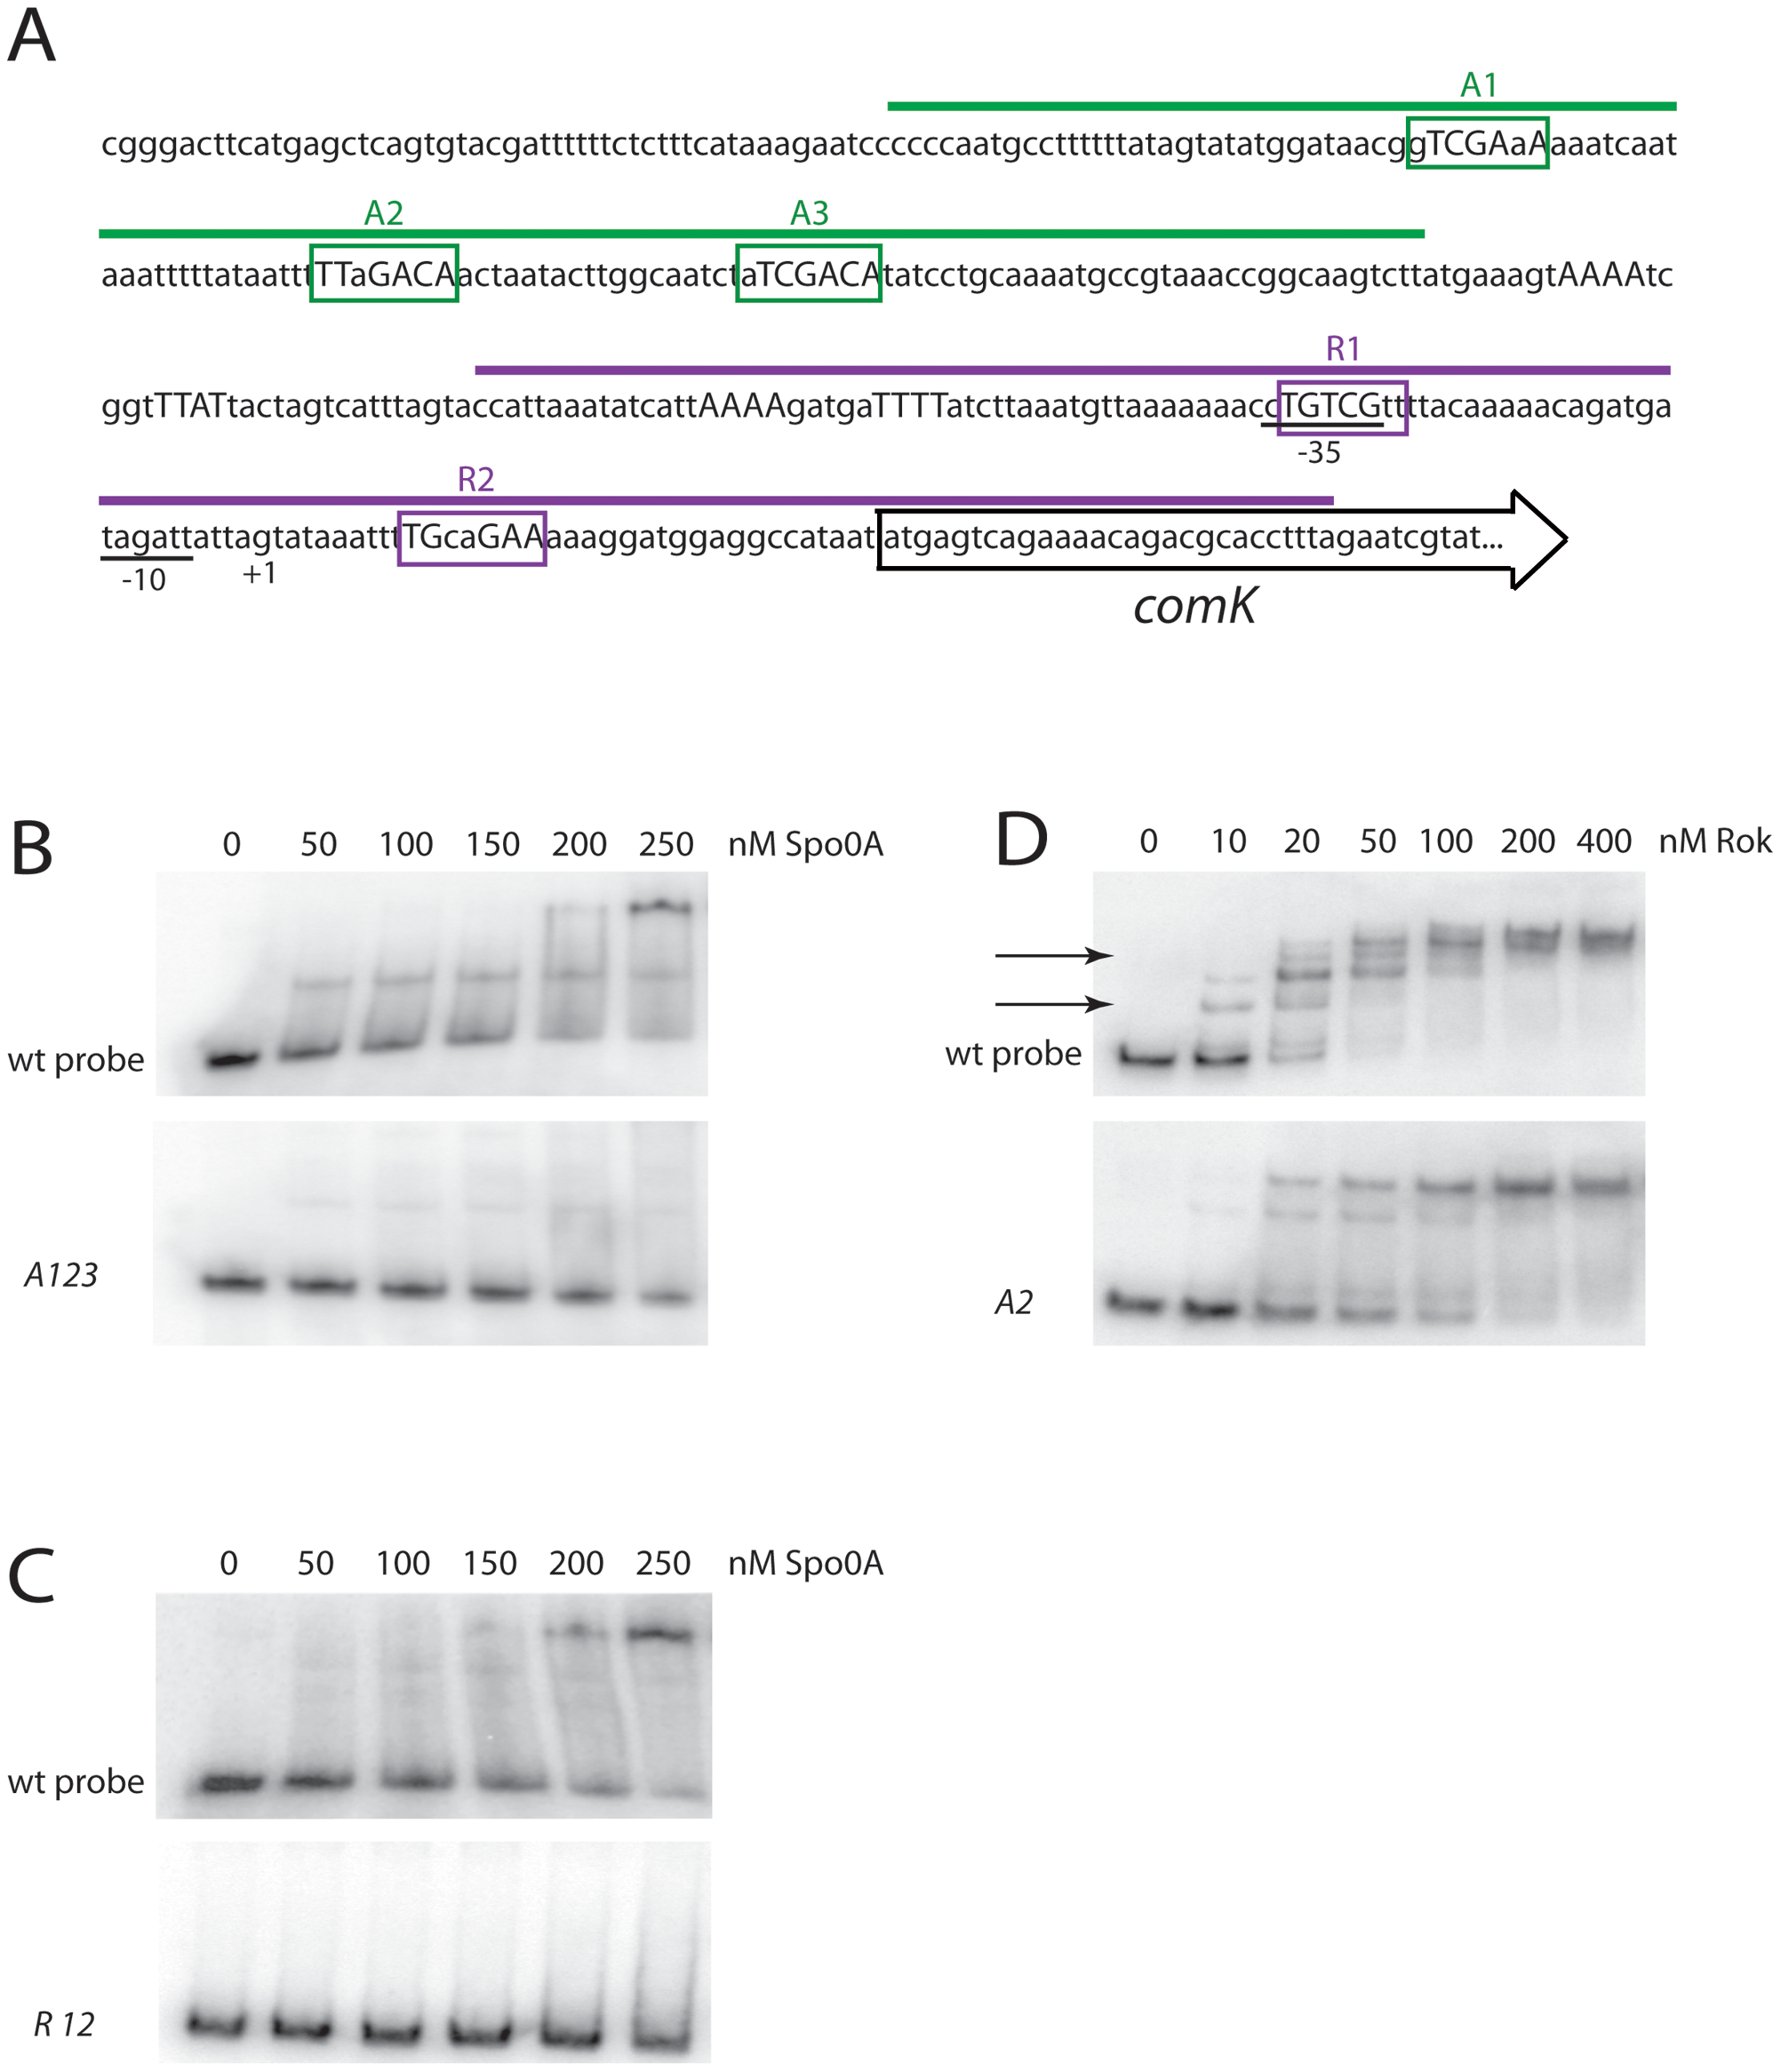 Spo0A binds directly to sequences in the <i>comK</i> regulatory region.